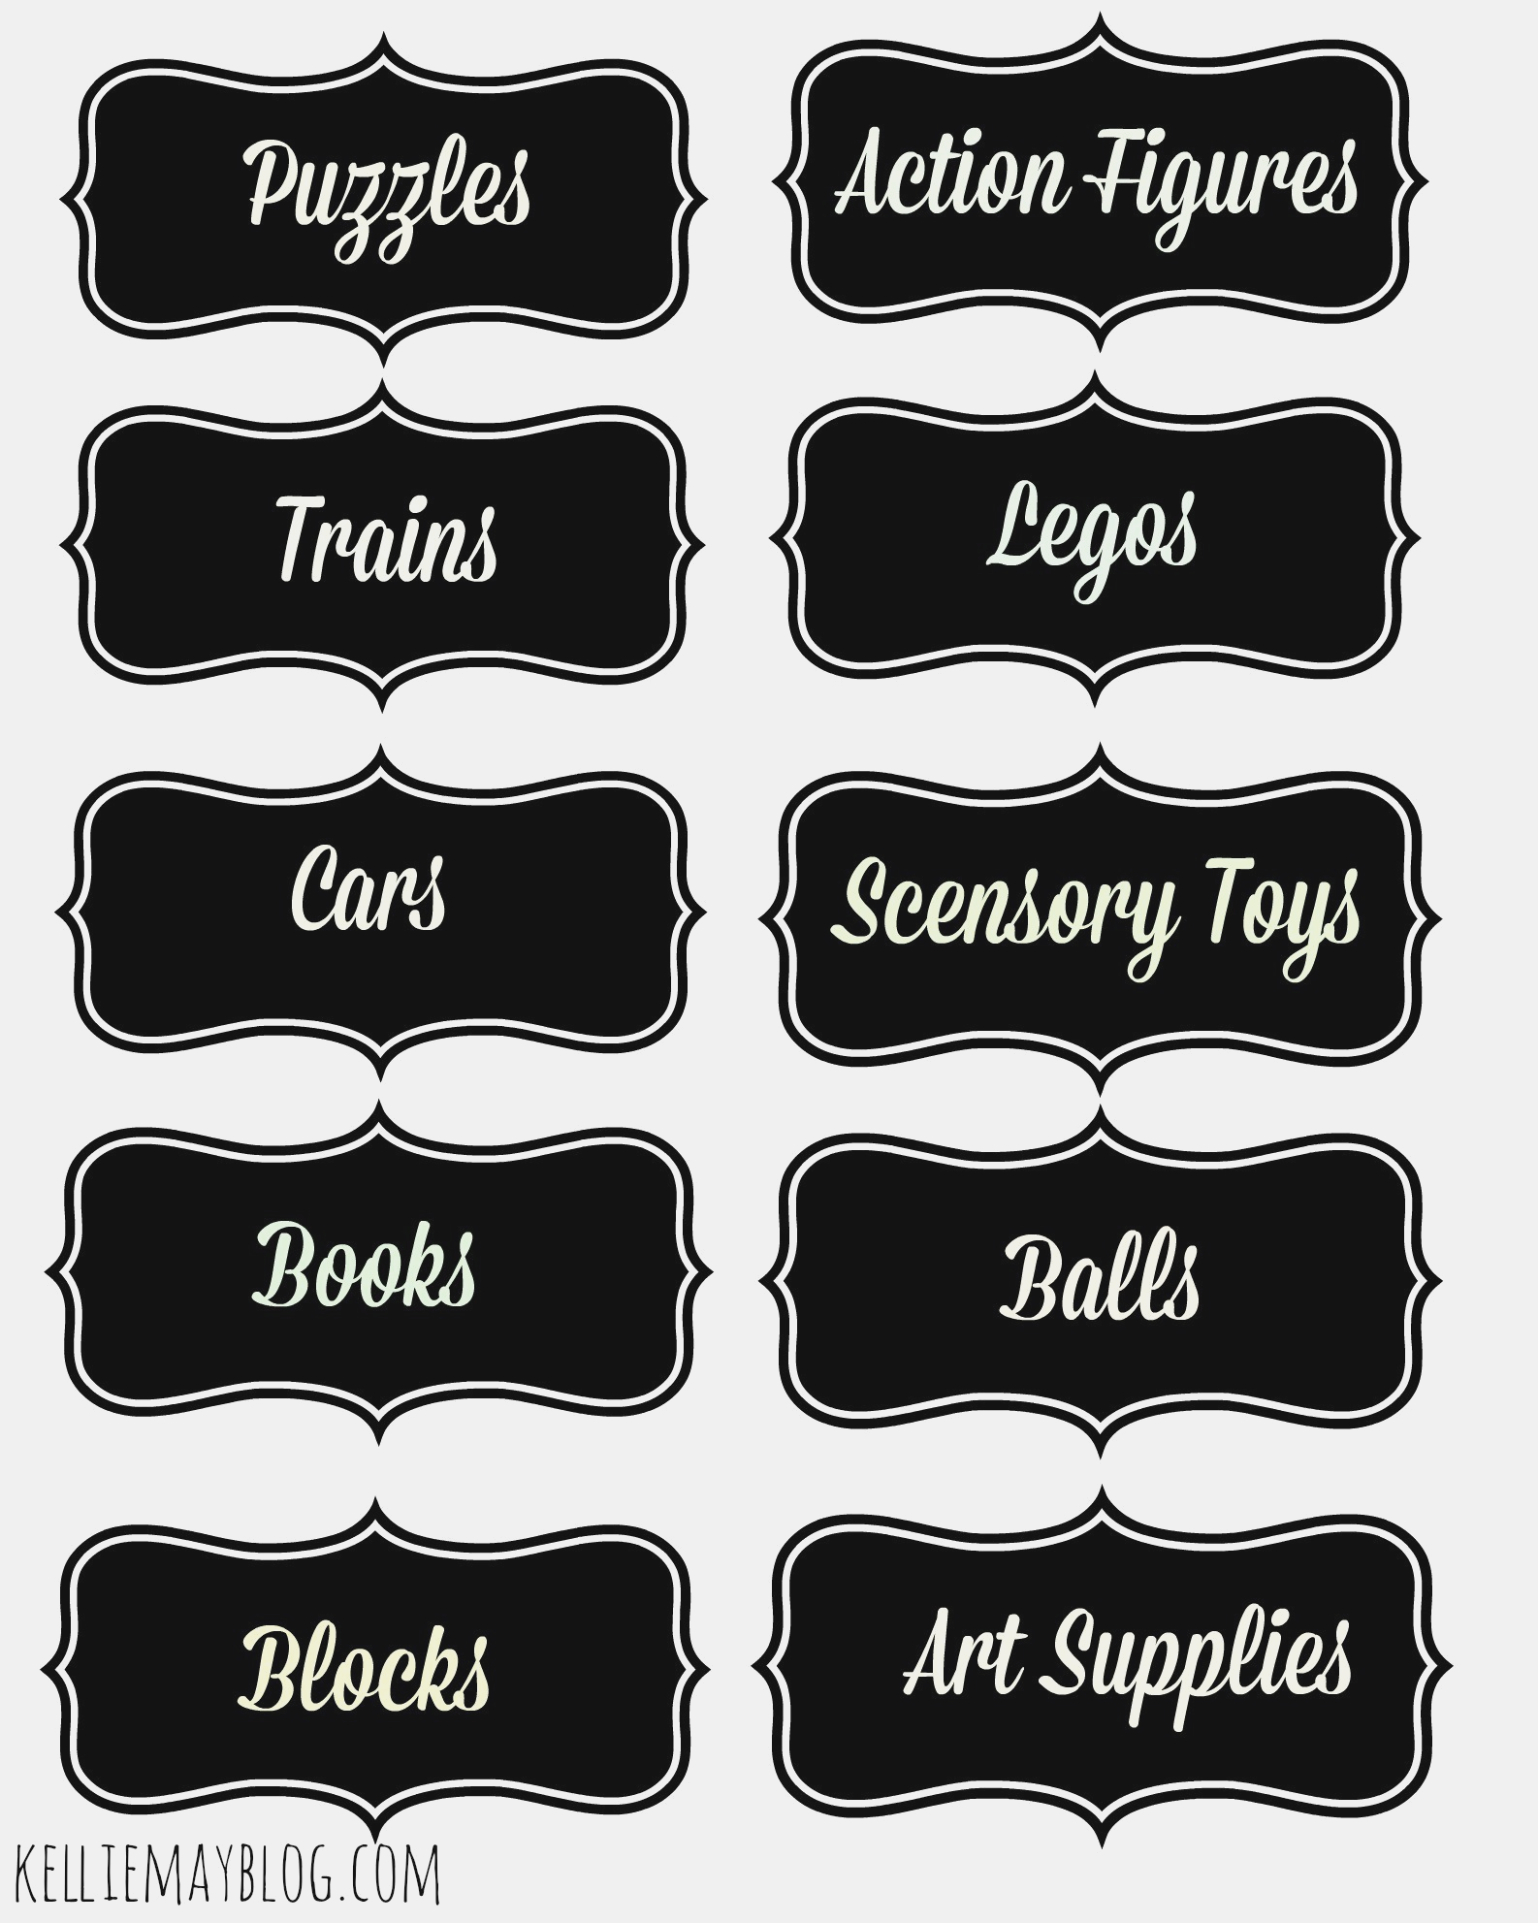 Book Bin Labels Printable | Popisgrzegorz – Label Maker Ideas - Free Printable Book Bin Labels